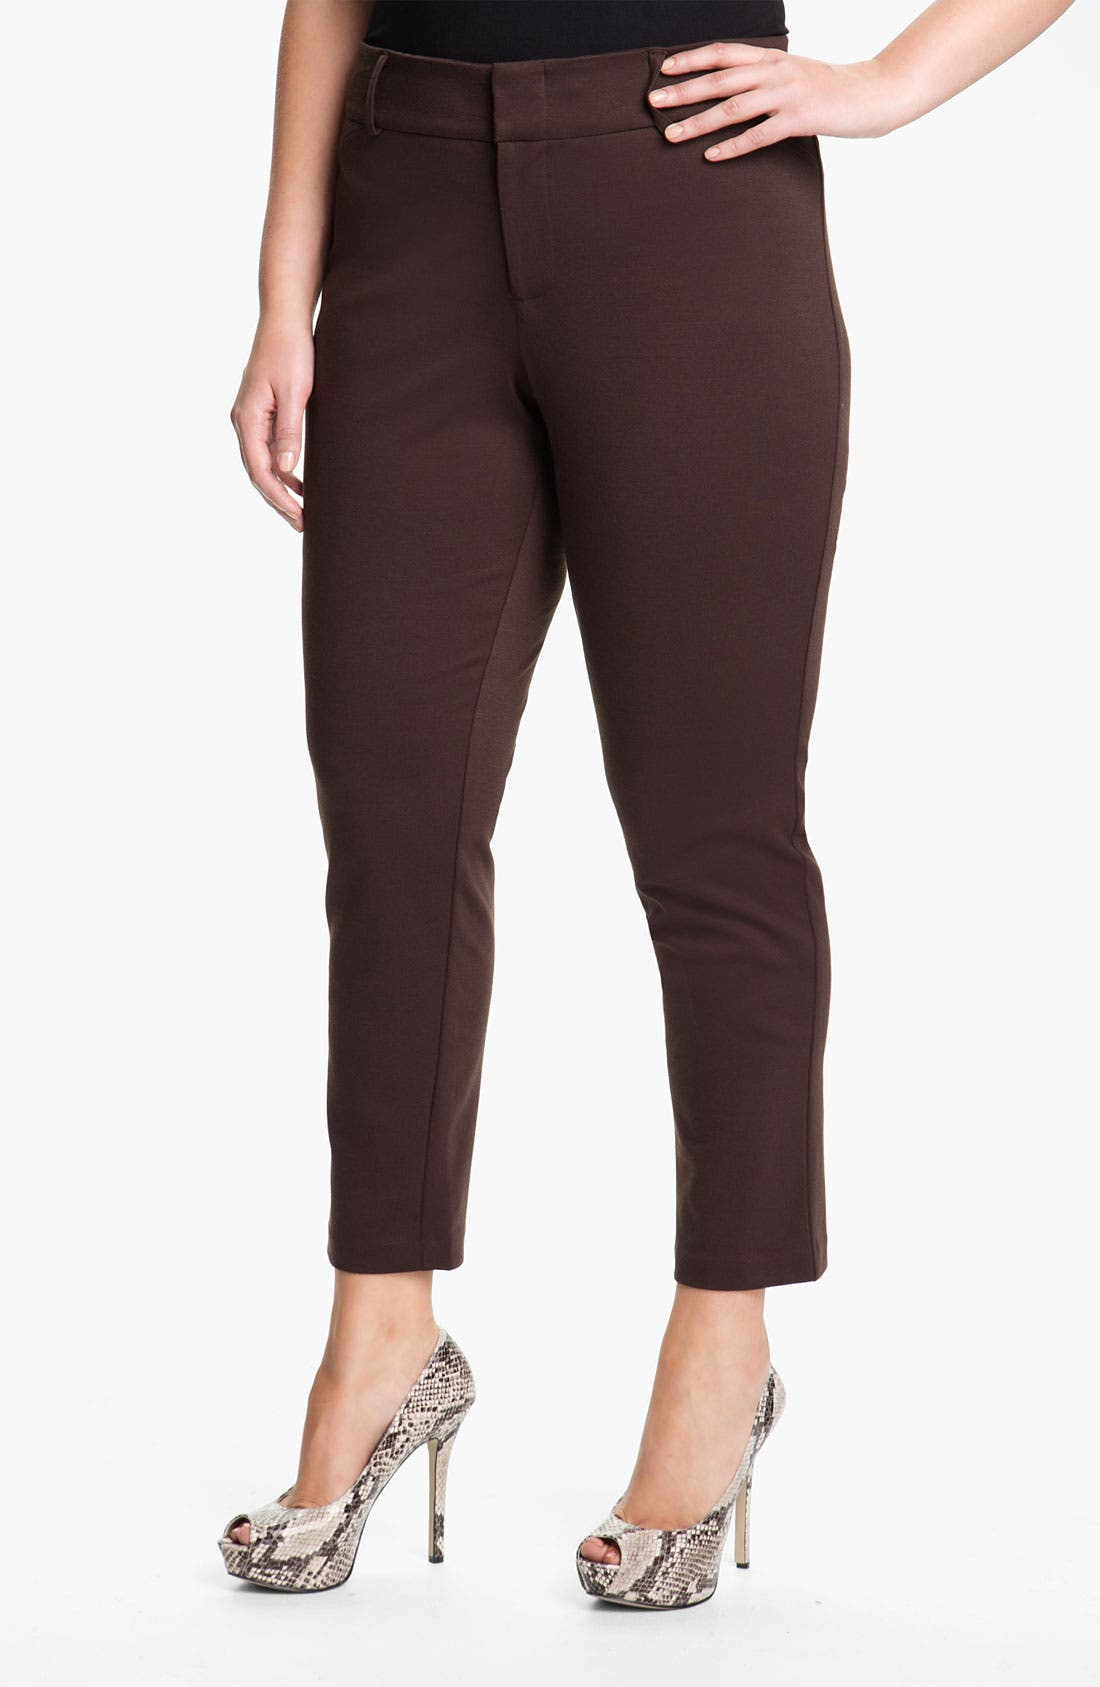 Alternate Image 1 Selected - MICHAEL Michael Kors Ponte Knit Ankle Pants (Plus)